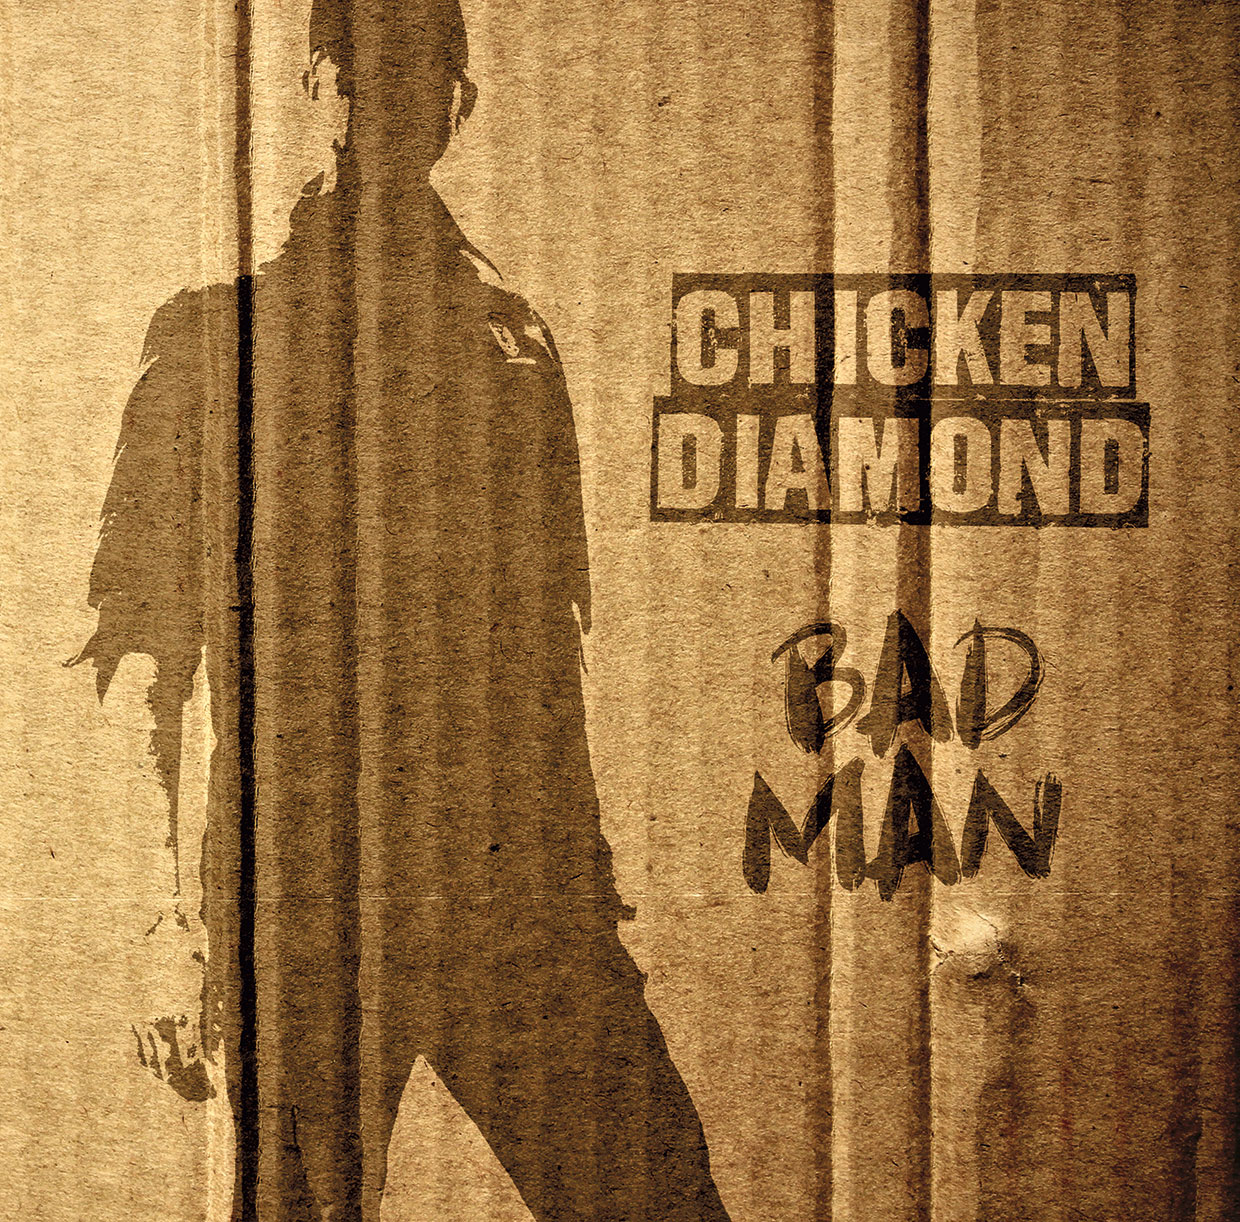 CHICKEN DIAMOND – BAD MAN